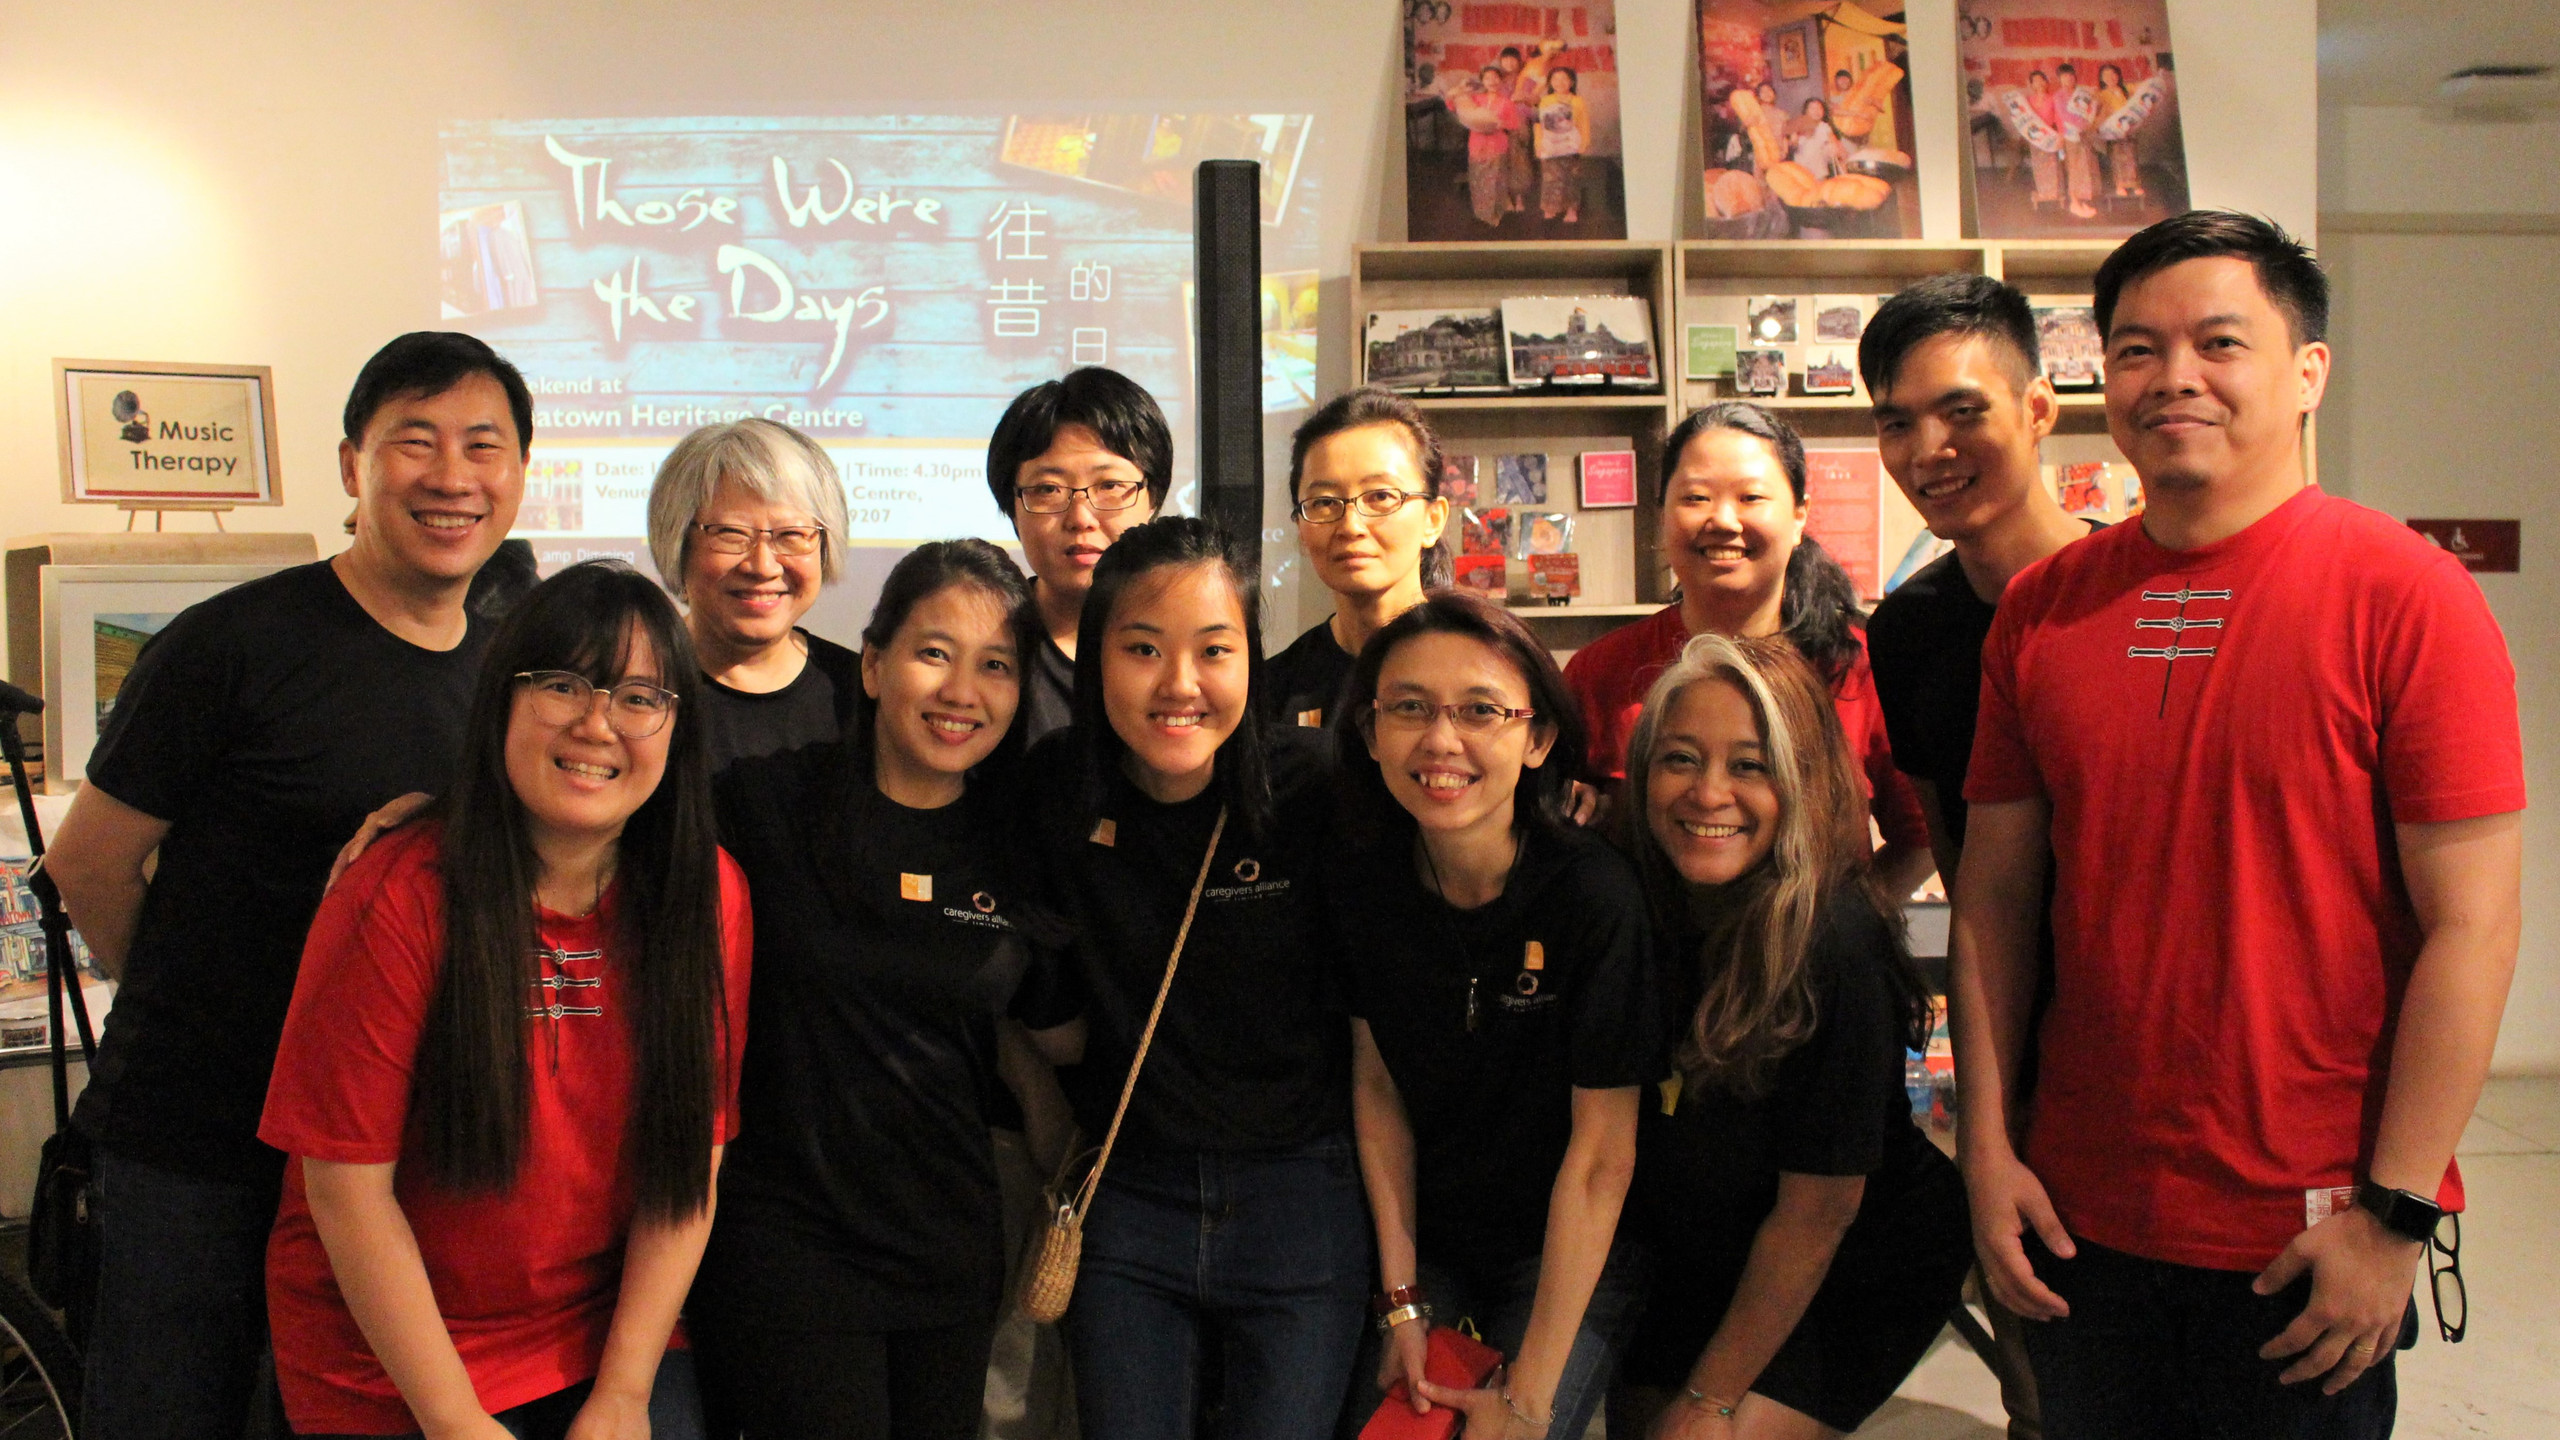 CAL staff and the crew from Chinatown Heritage Centre who tirelessly helped out throughout the two days.